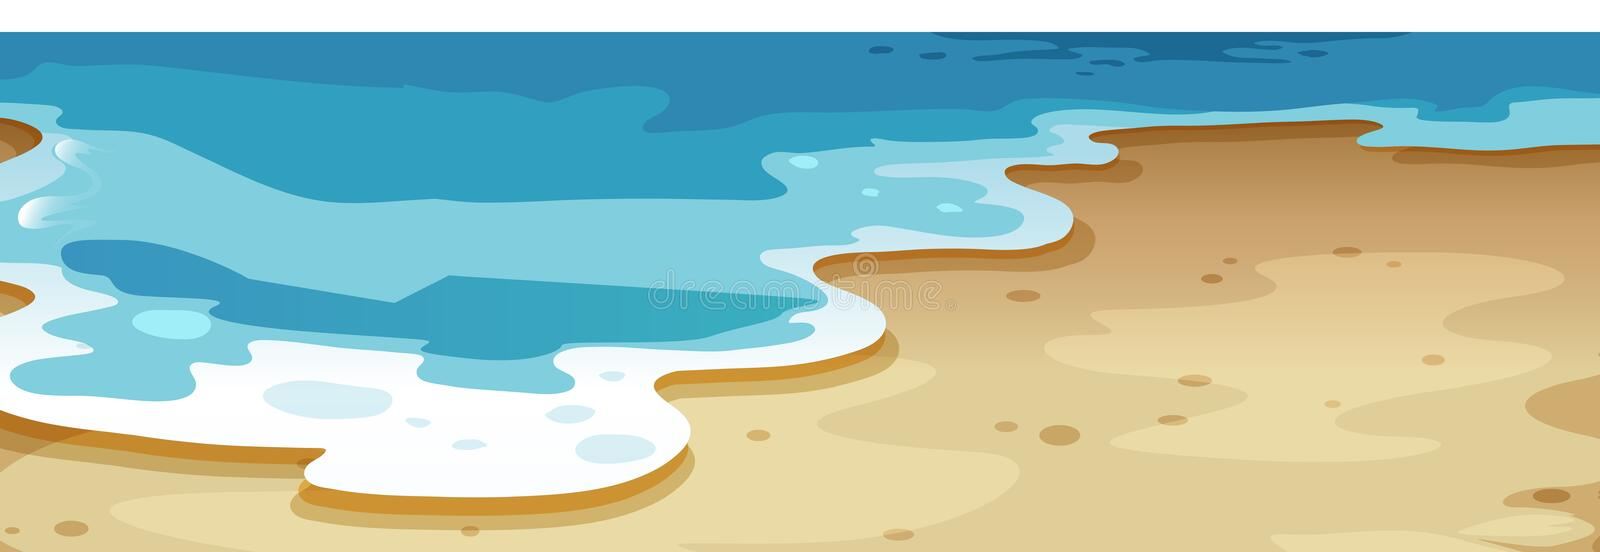 A close up beach background royalty free illustration